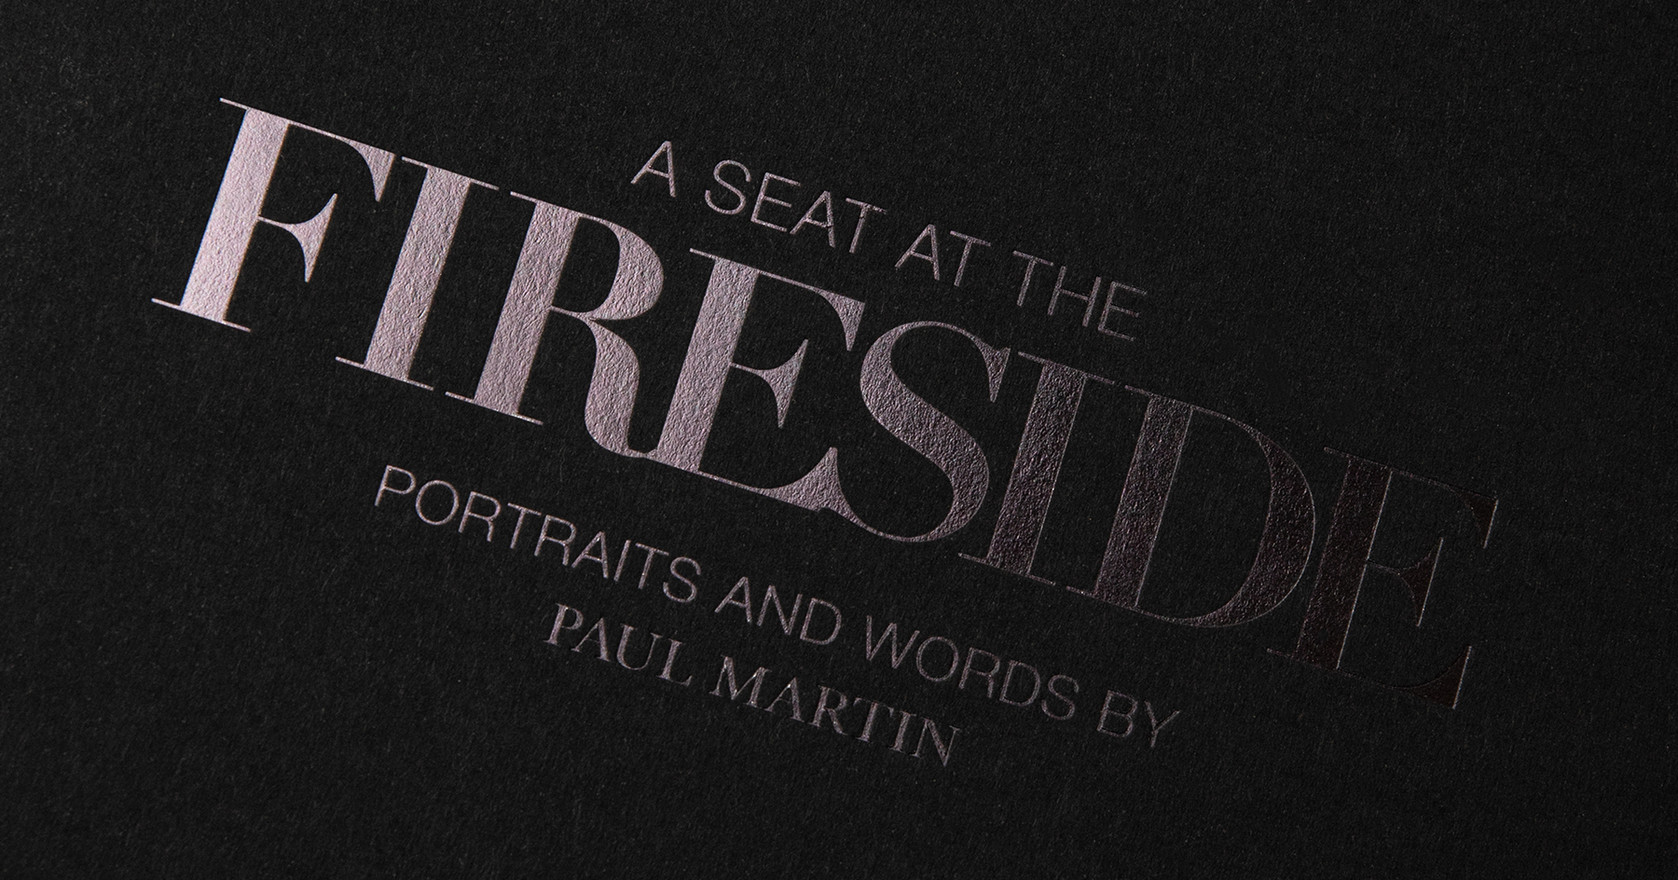 Homeless book. A seat at The Fireside